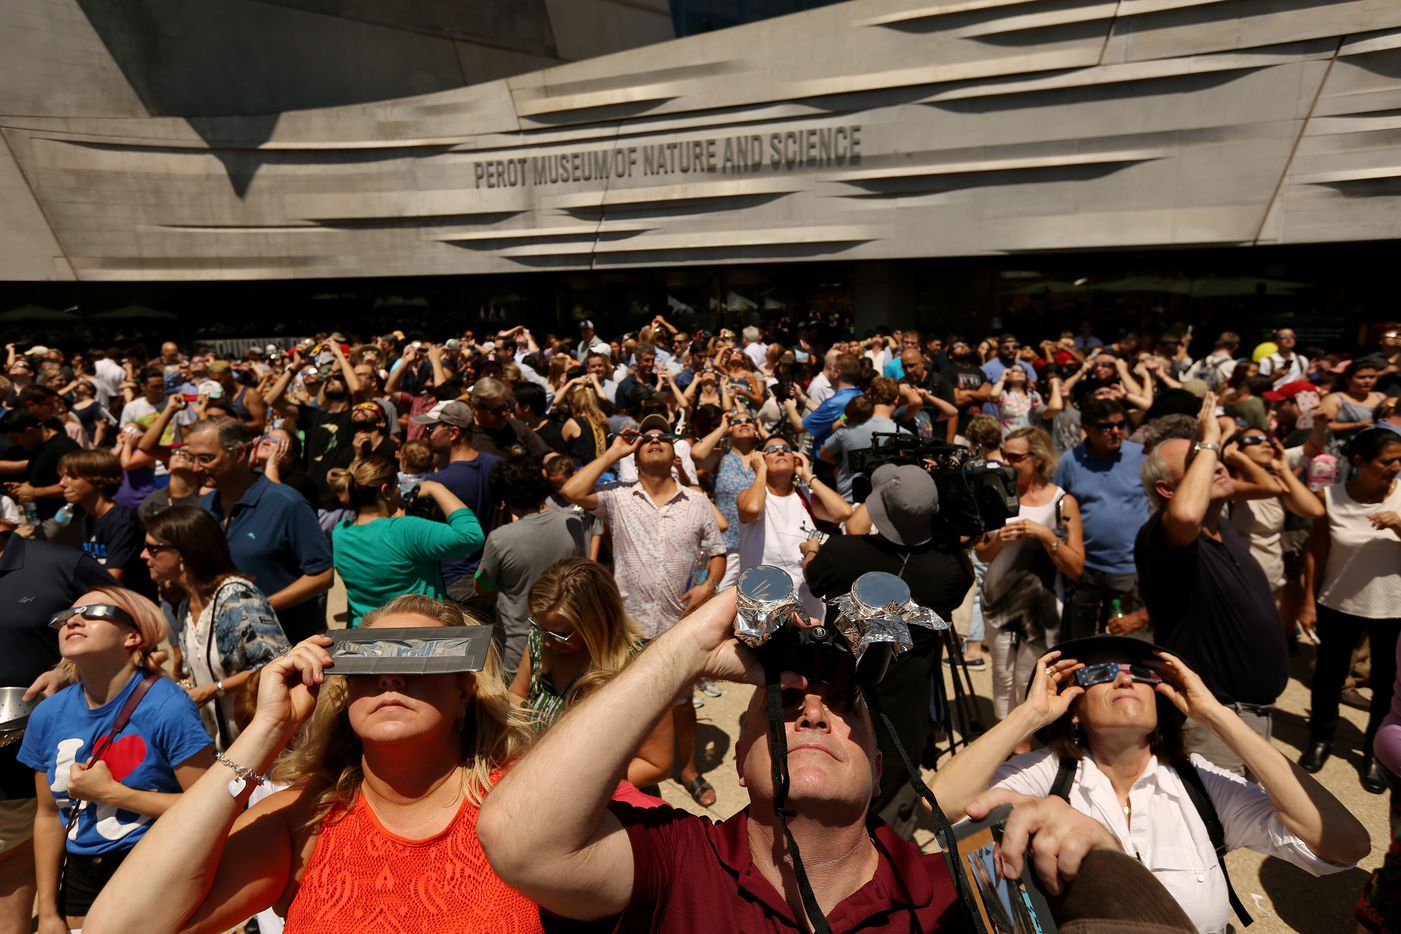 People watch the sun during a solar eclipse outdoor watch party at the Perot Museum of Nature and Science.